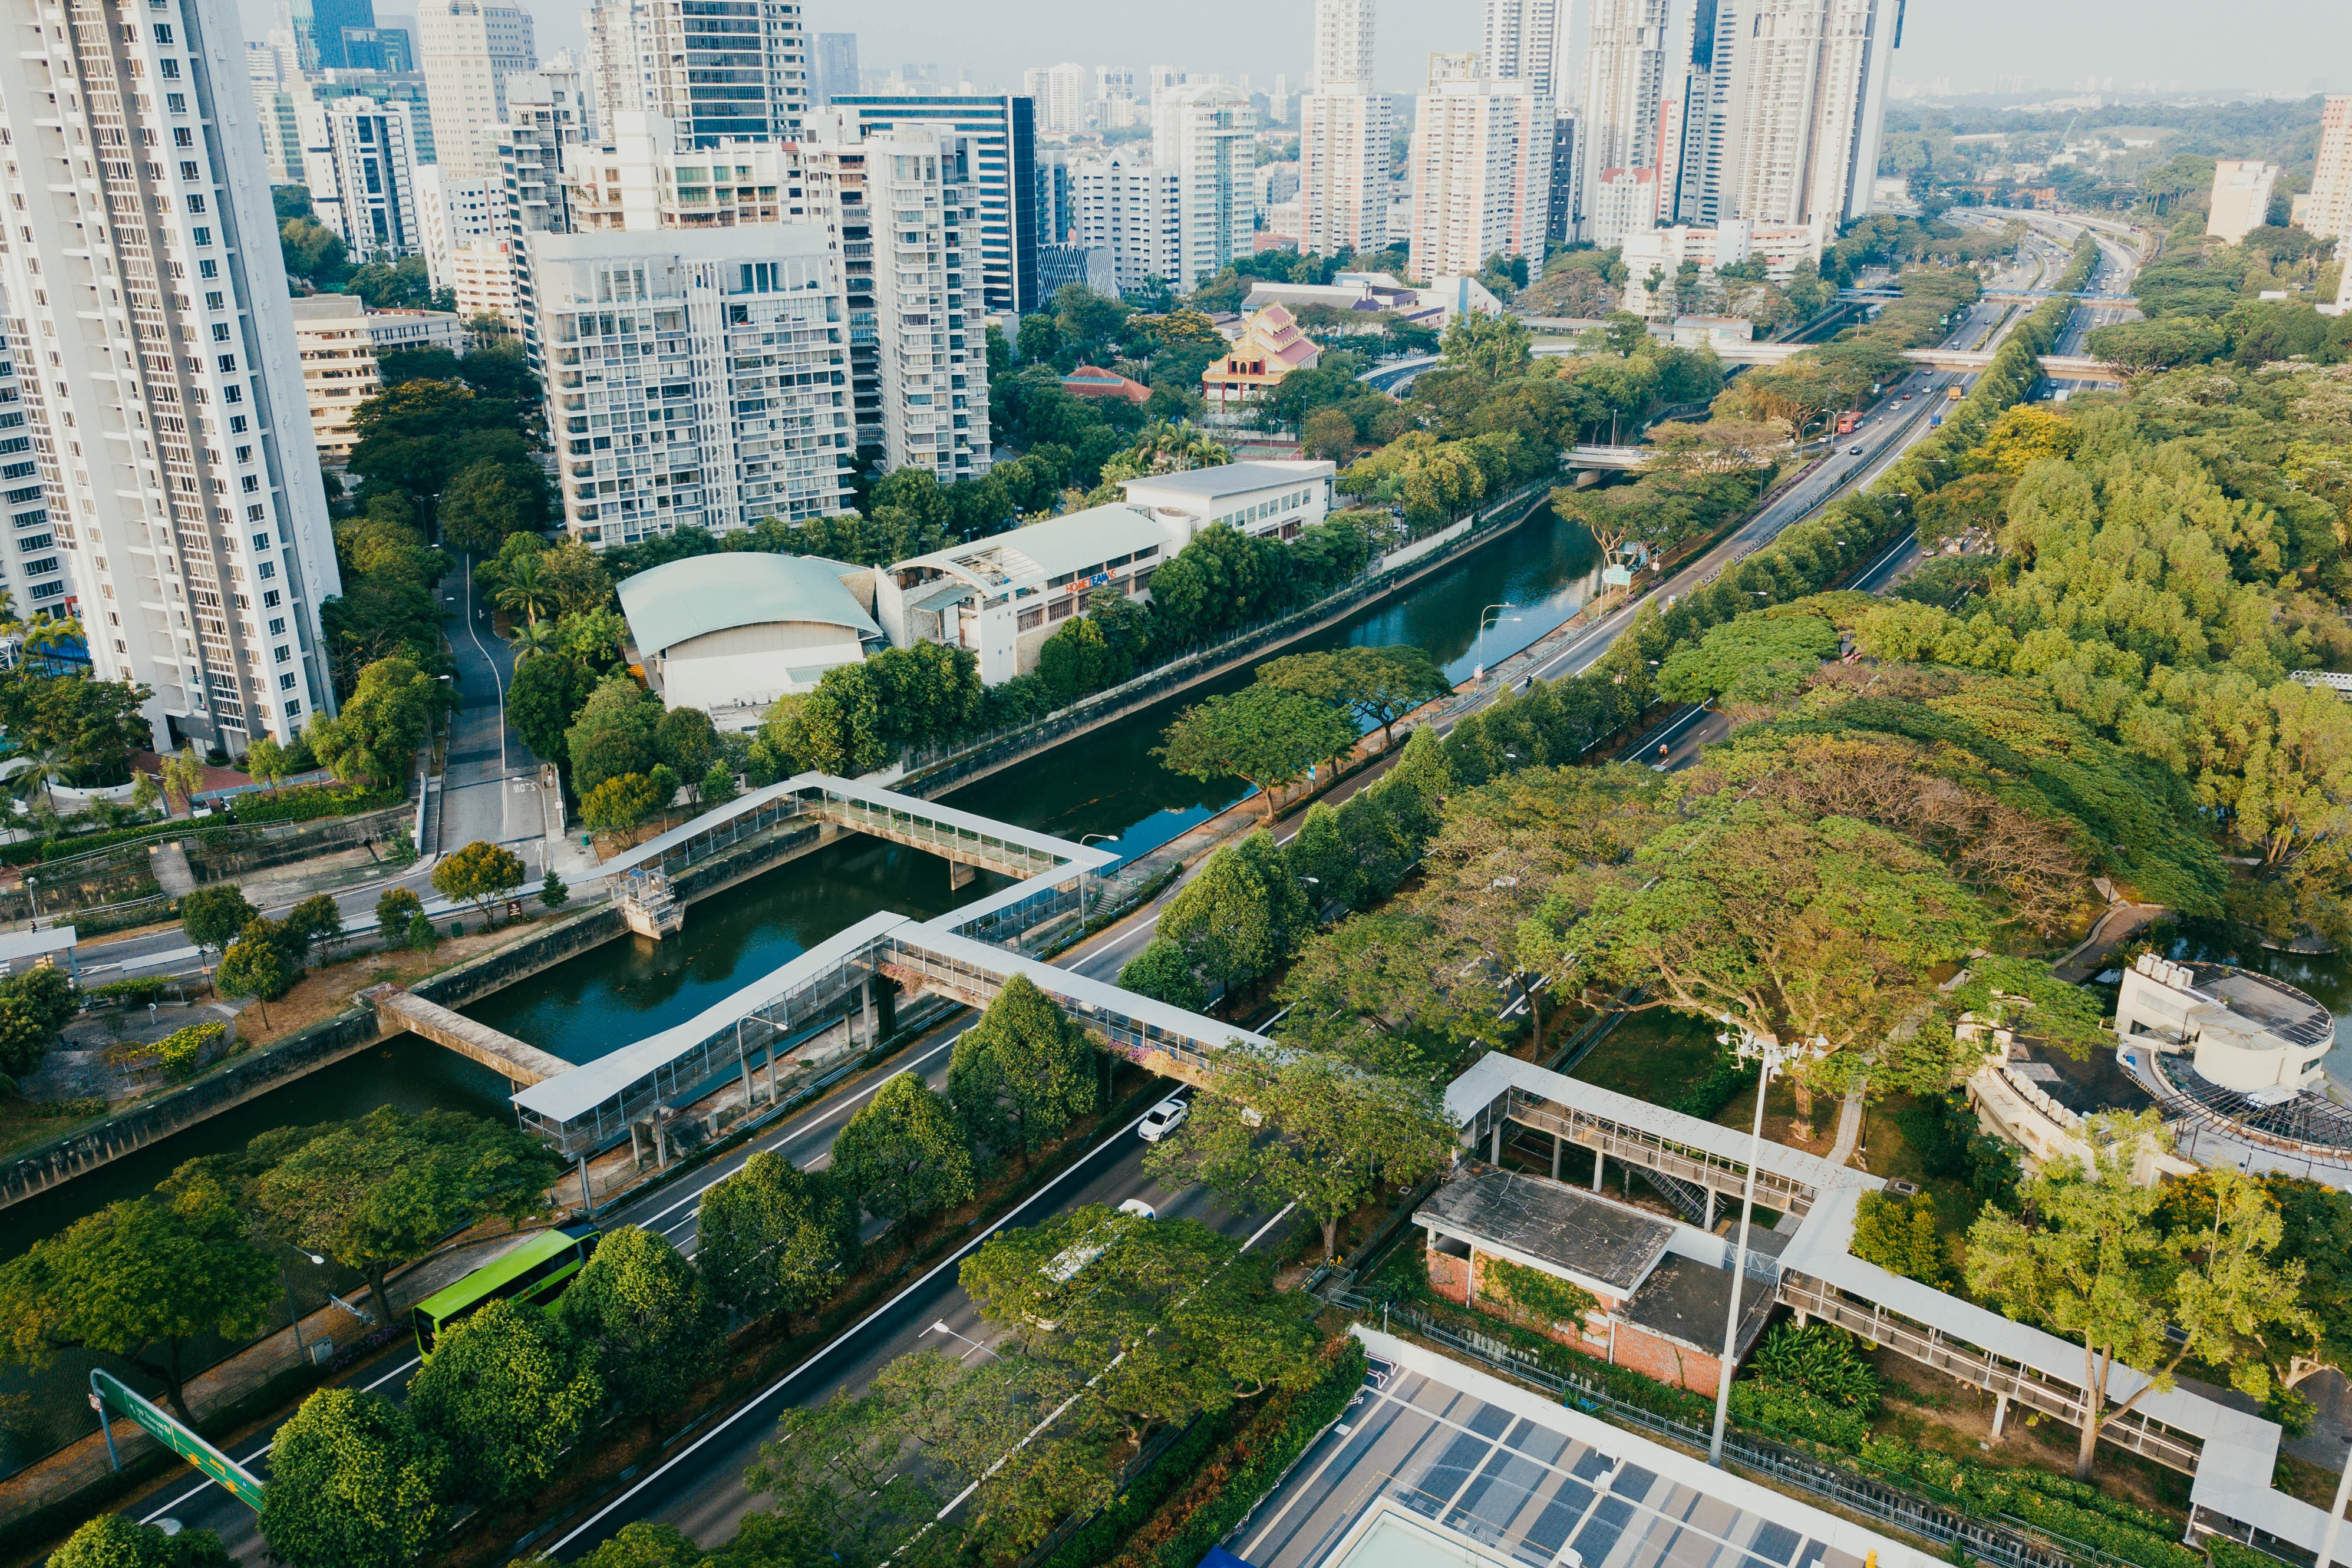 aerial photography of buildings and trees at daytime